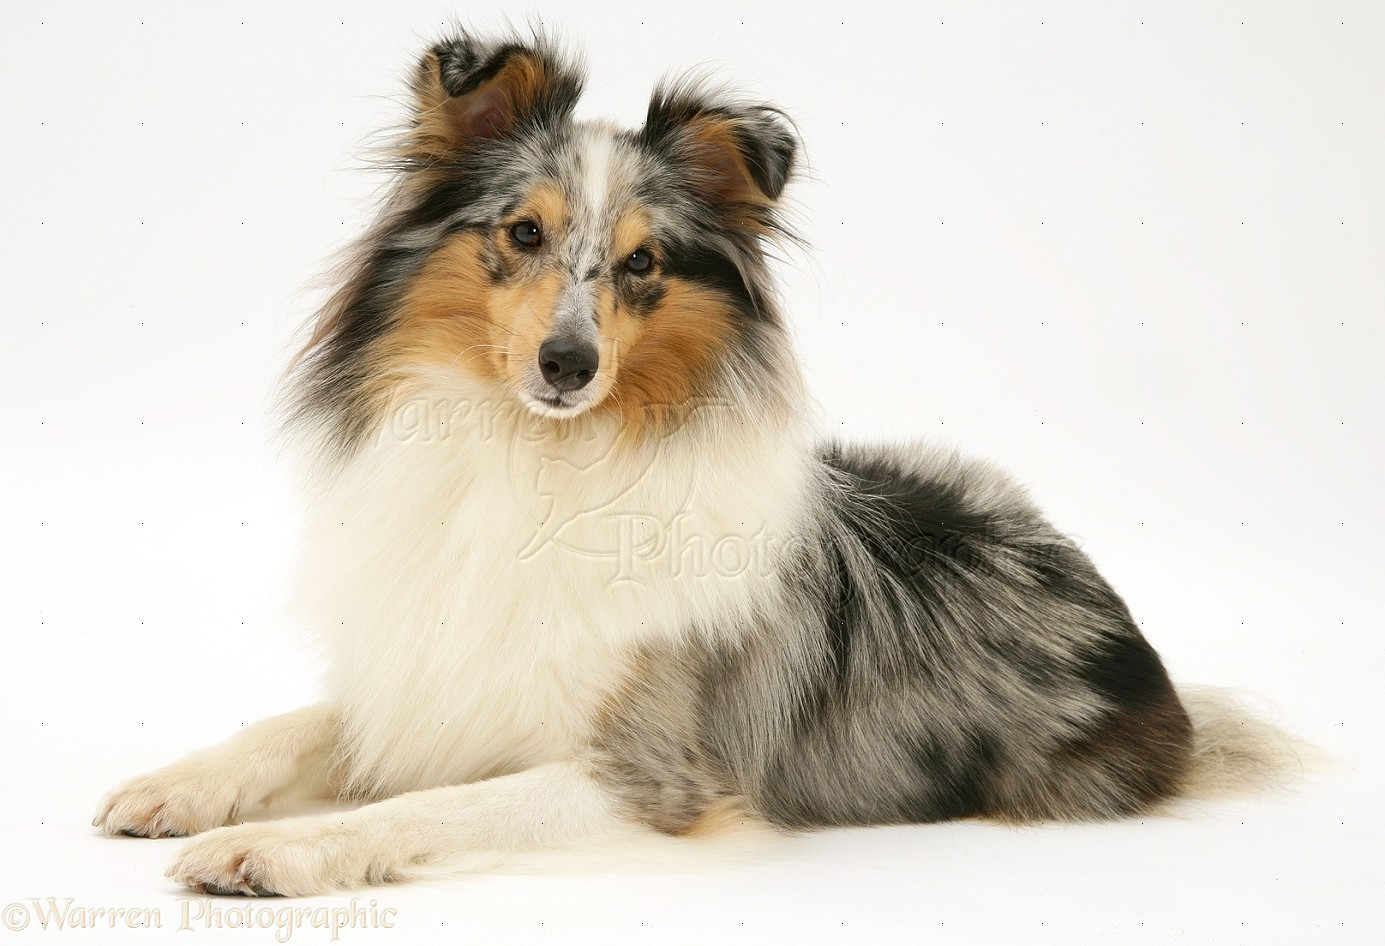 Blue merle Shetland Sheepdog (Sheltie) photo - WP11761